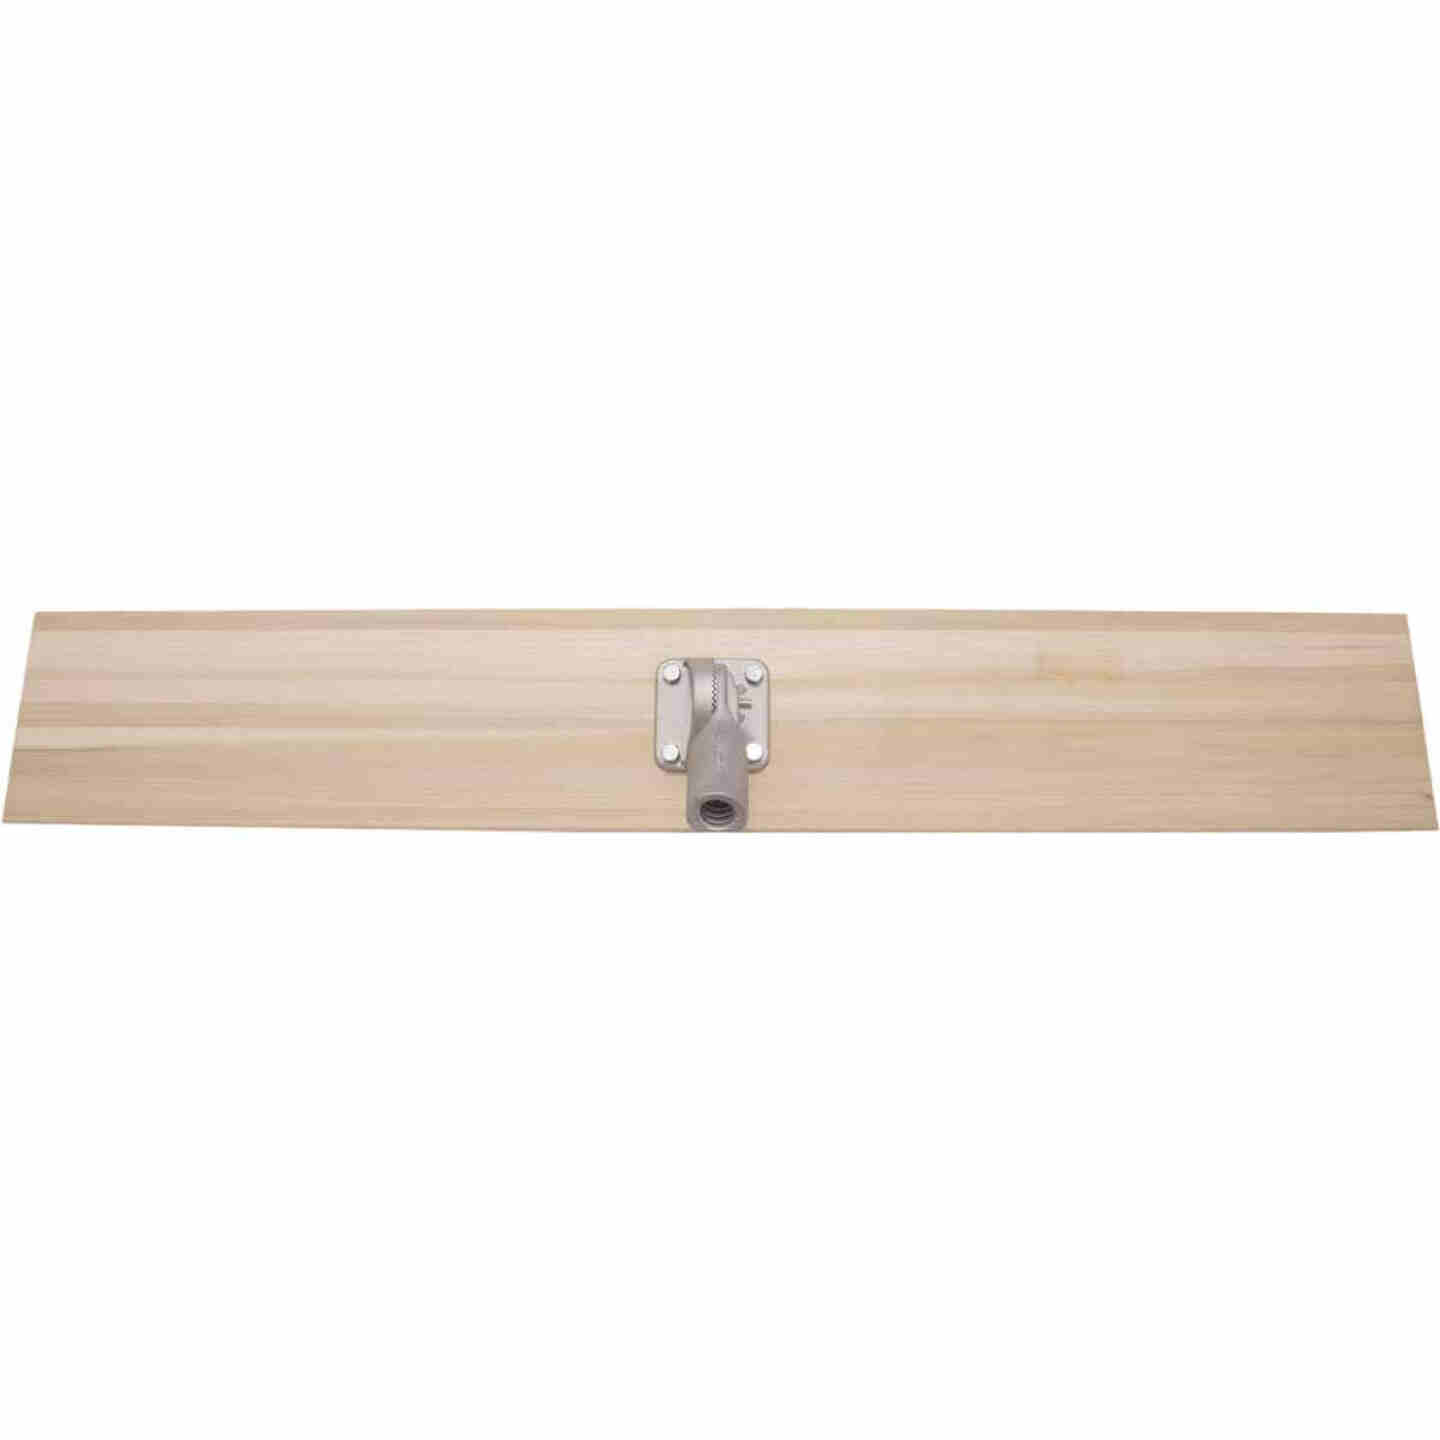 Marshalltown 8 In. x 48 In. Straight End Wood Bull Float Image 3